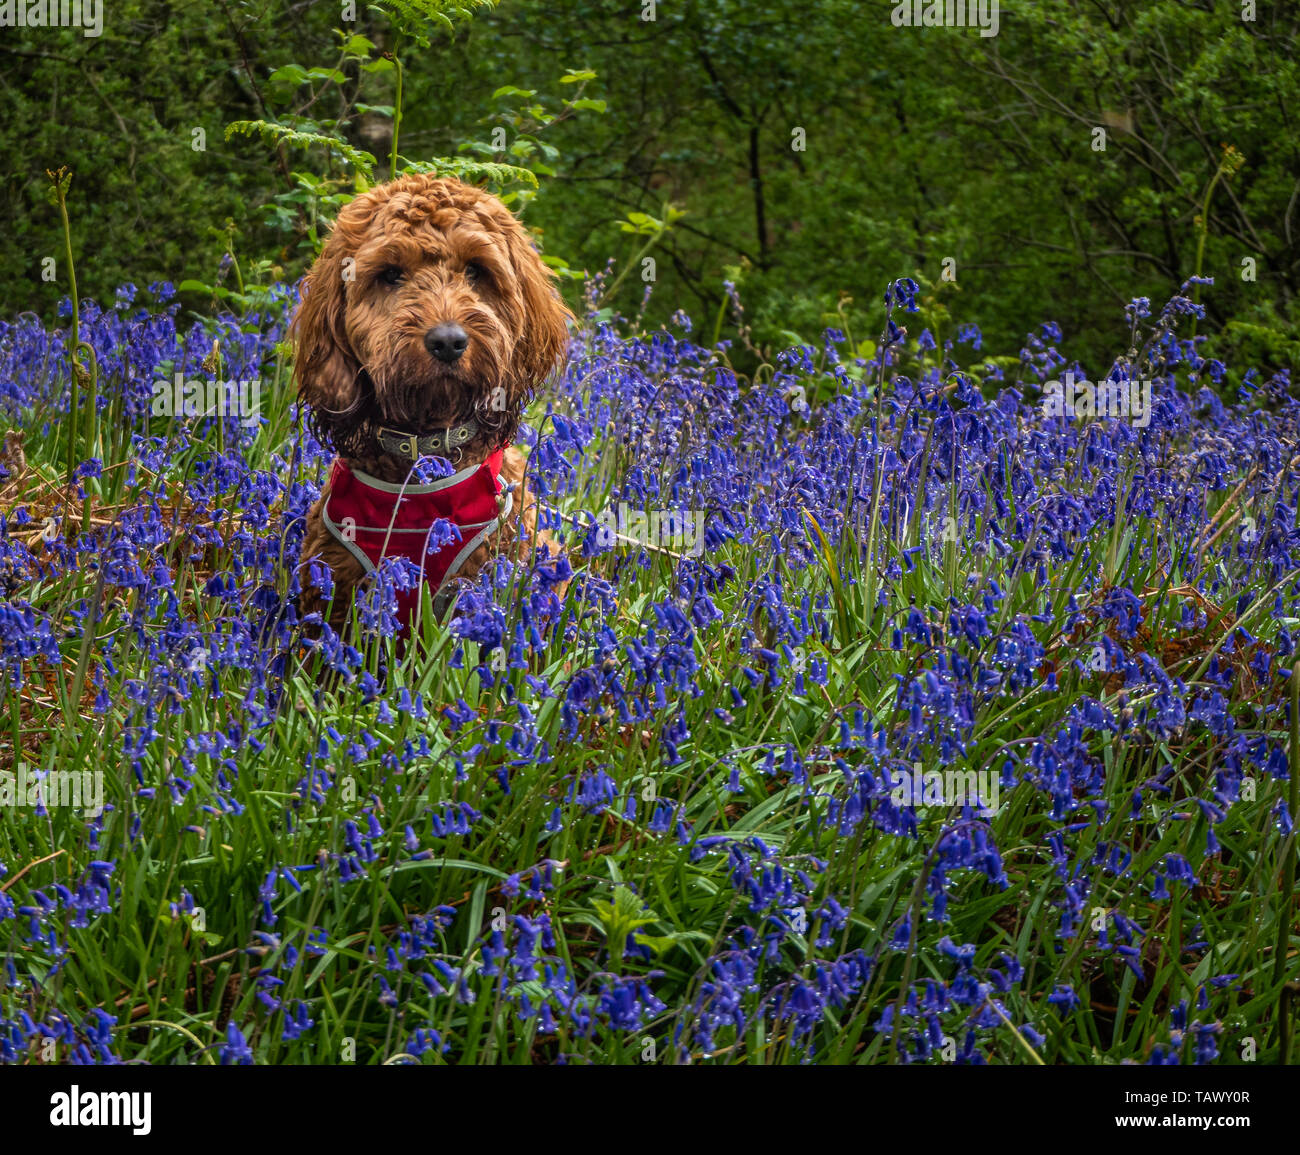 Red Cockapoo sitting amongst the bluebells in a wood - Stock Image